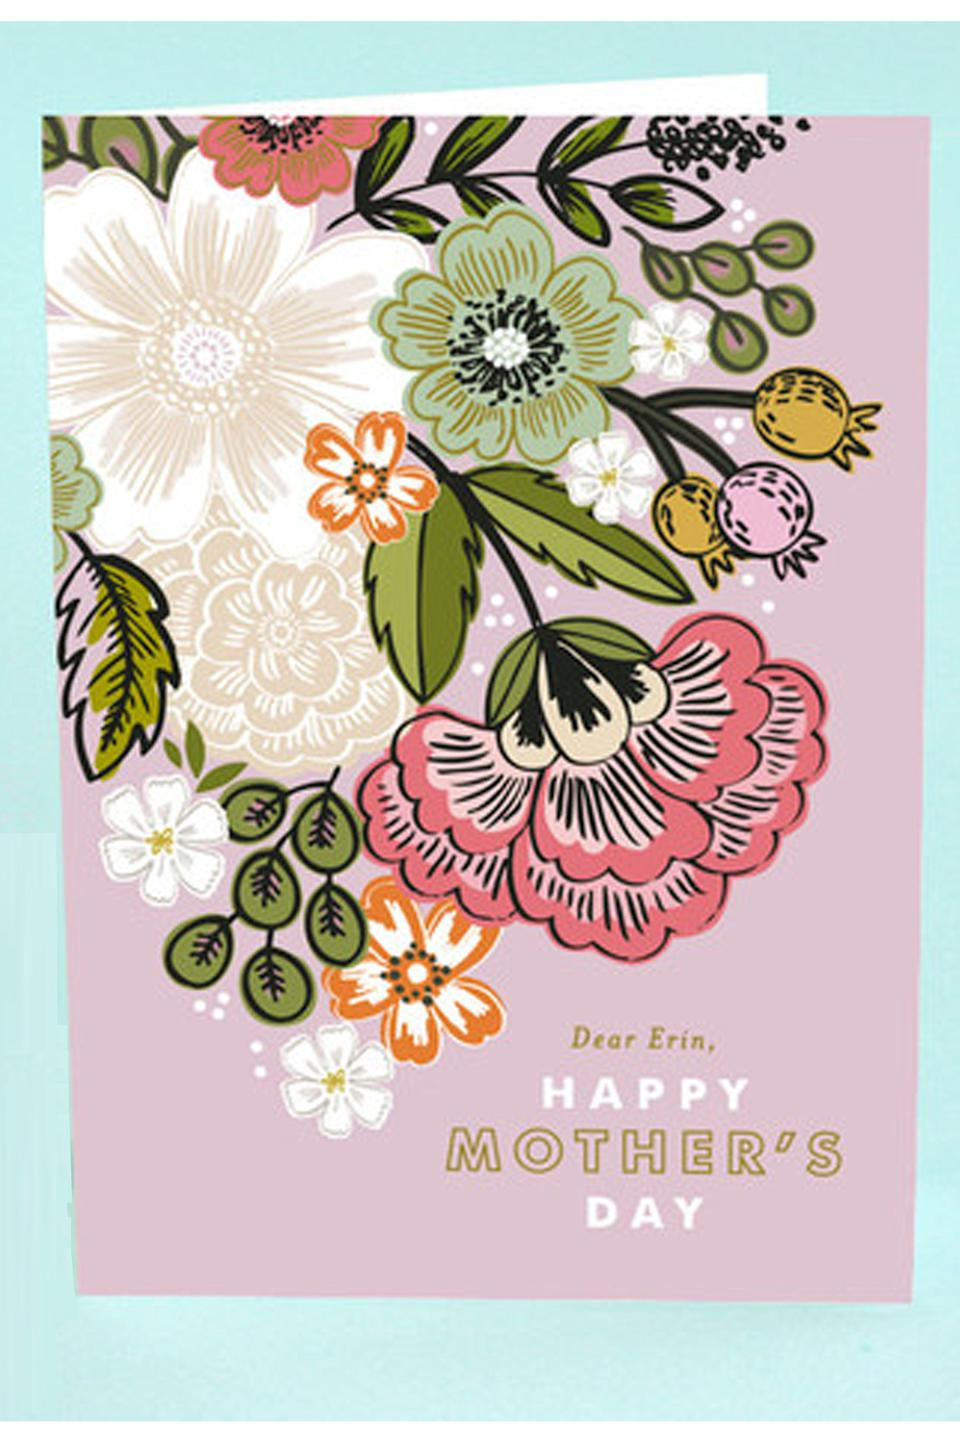 """<p>minted.com</p><p><strong>$6.98</strong></p><p><a href=""""https://go.redirectingat.com?id=74968X1596630&url=https%3A%2F%2Fwww.minted.com%2Fproduct%2Fmothers-day-greeting-cards%2FMIN-CJ8-GMD%2Fflower-bouquet&sref=https%3A%2F%2Fwww.townandcountrymag.com%2Fstyle%2Fg26929890%2Fbest-mothers-day-cards%2F"""" rel=""""nofollow noopener"""" target=""""_blank"""" data-ylk=""""slk:Shop Now"""" class=""""link rapid-noclick-resp"""">Shop Now</a></p><p>Customize your Mother's Day card to give mom a special message. You can even upload a photo into this design, to make the sentiment even more unique. </p>"""